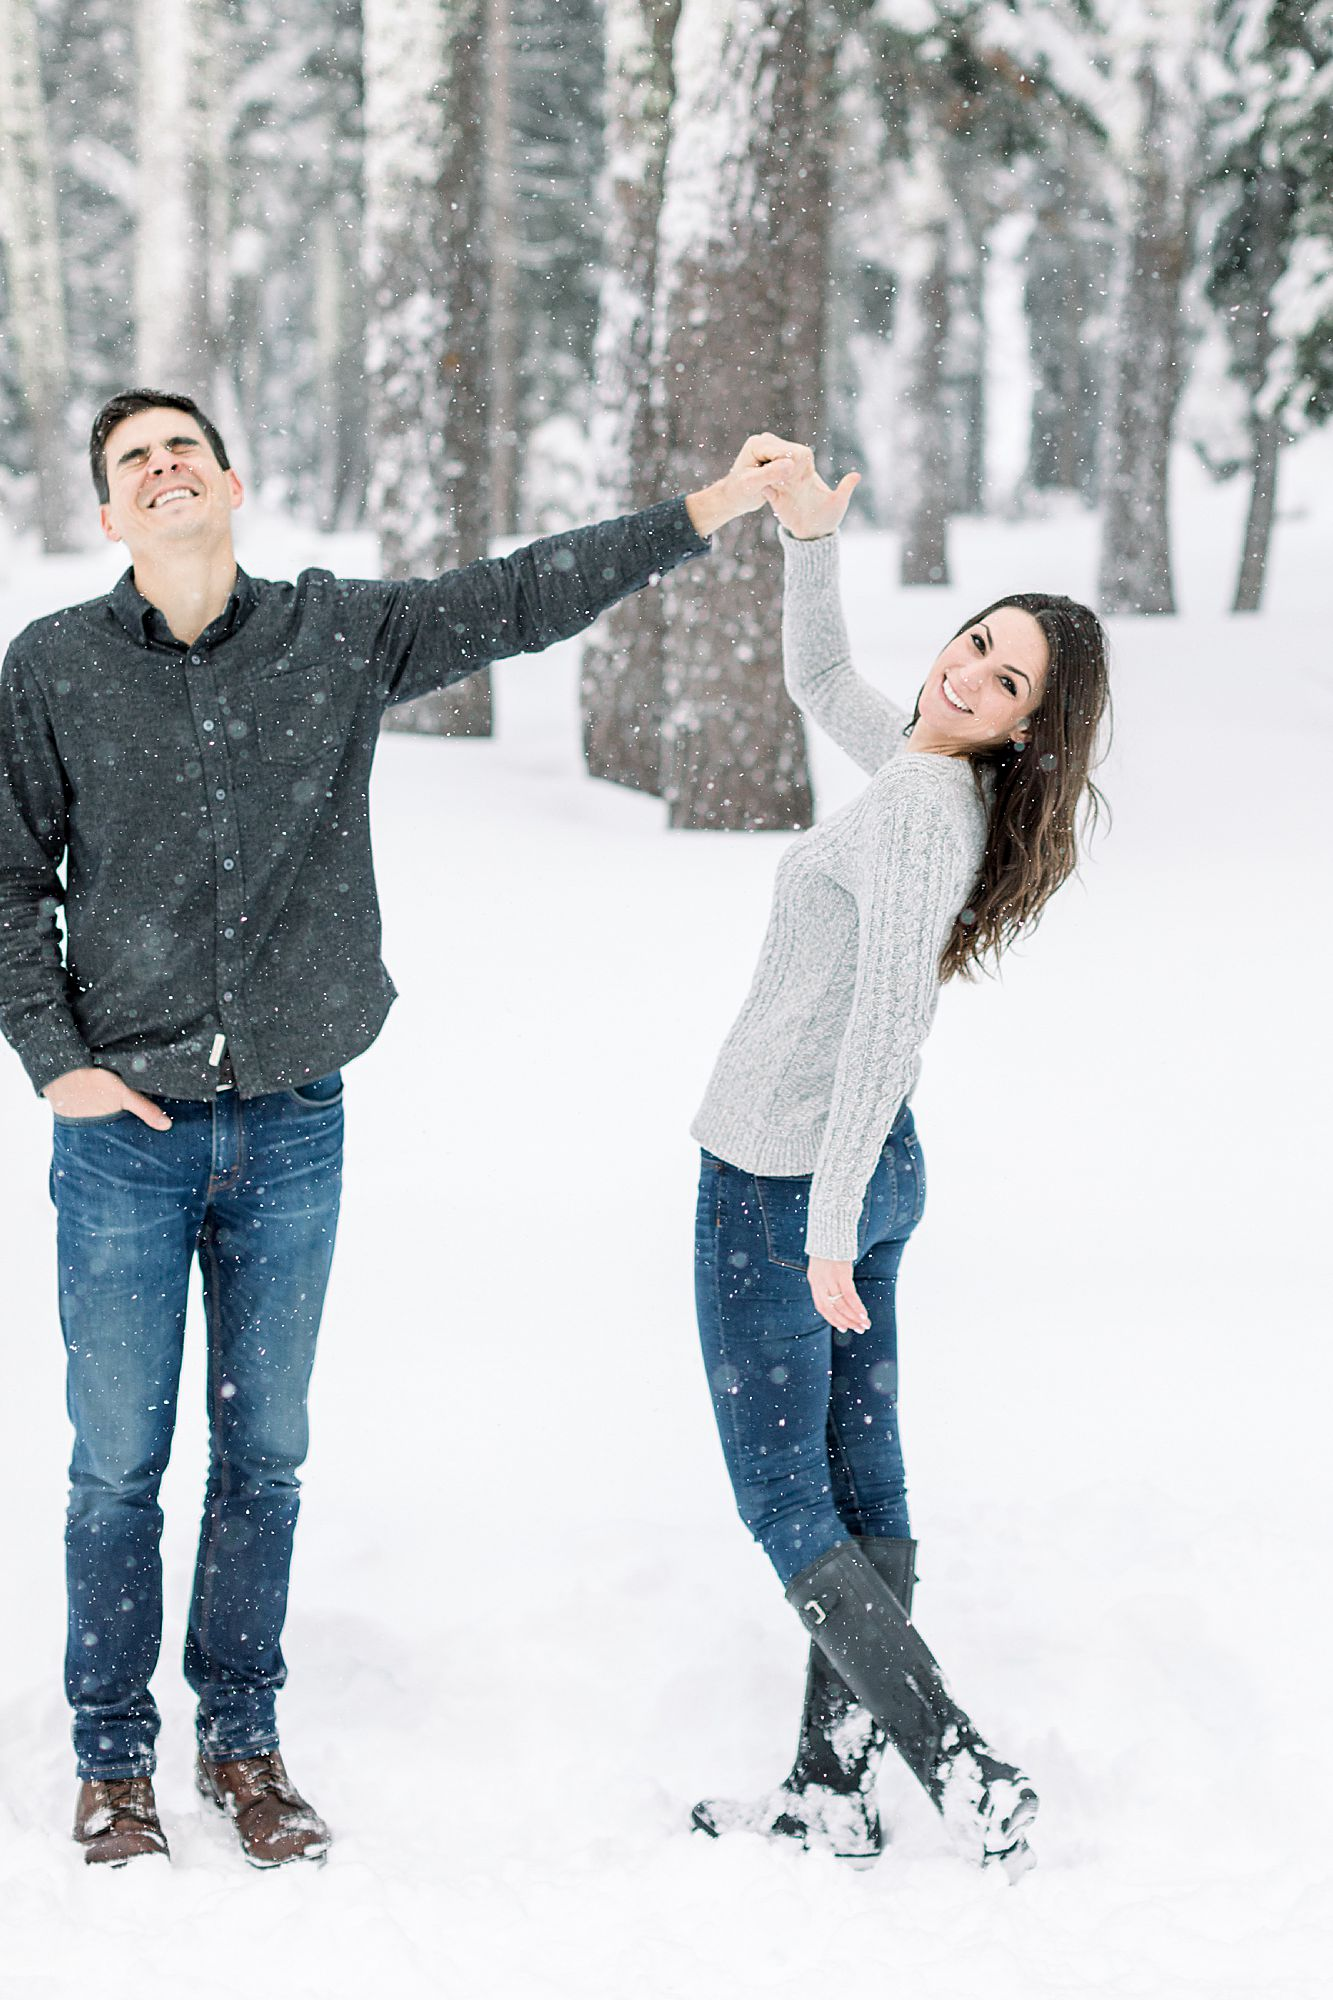 Snowy Tahoe Engagement Session - Alex and Kevin - Ashley Baumgartner - Tahoe Engagement Session - Tahoe Wedding Photographer - Tahoe Engagement Photos - Snow Engagement Photos_0012.jpg